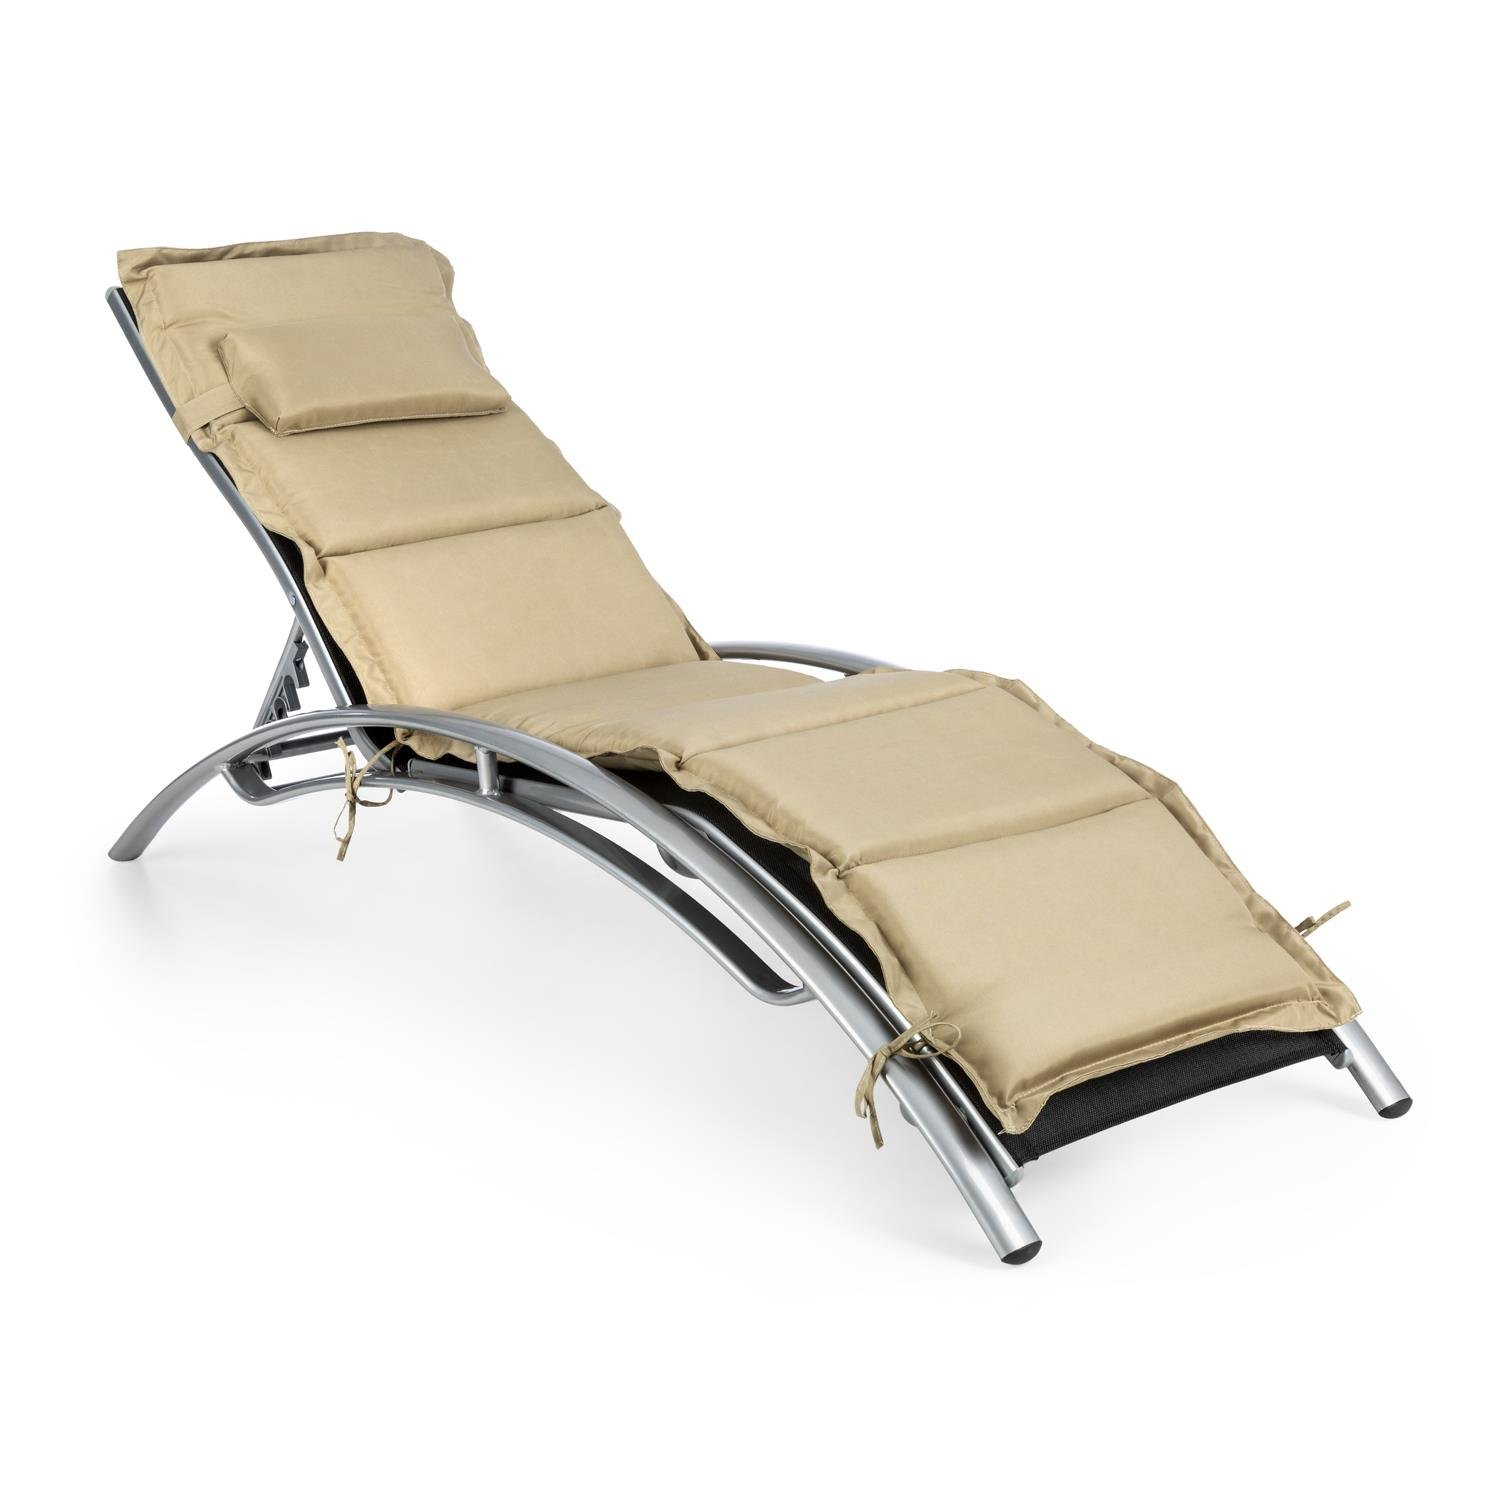 Blumfeldt Intermezzo Sun Lounger Sunbed Adjustable Backrest and Armrests Aluminium 5cm PU Padding Easy-Care Mattress Area Made of 2 x 1 Polyester Mesh Water Resistant Weather Resistant Ergonomically Shaped Durable Black / Beige